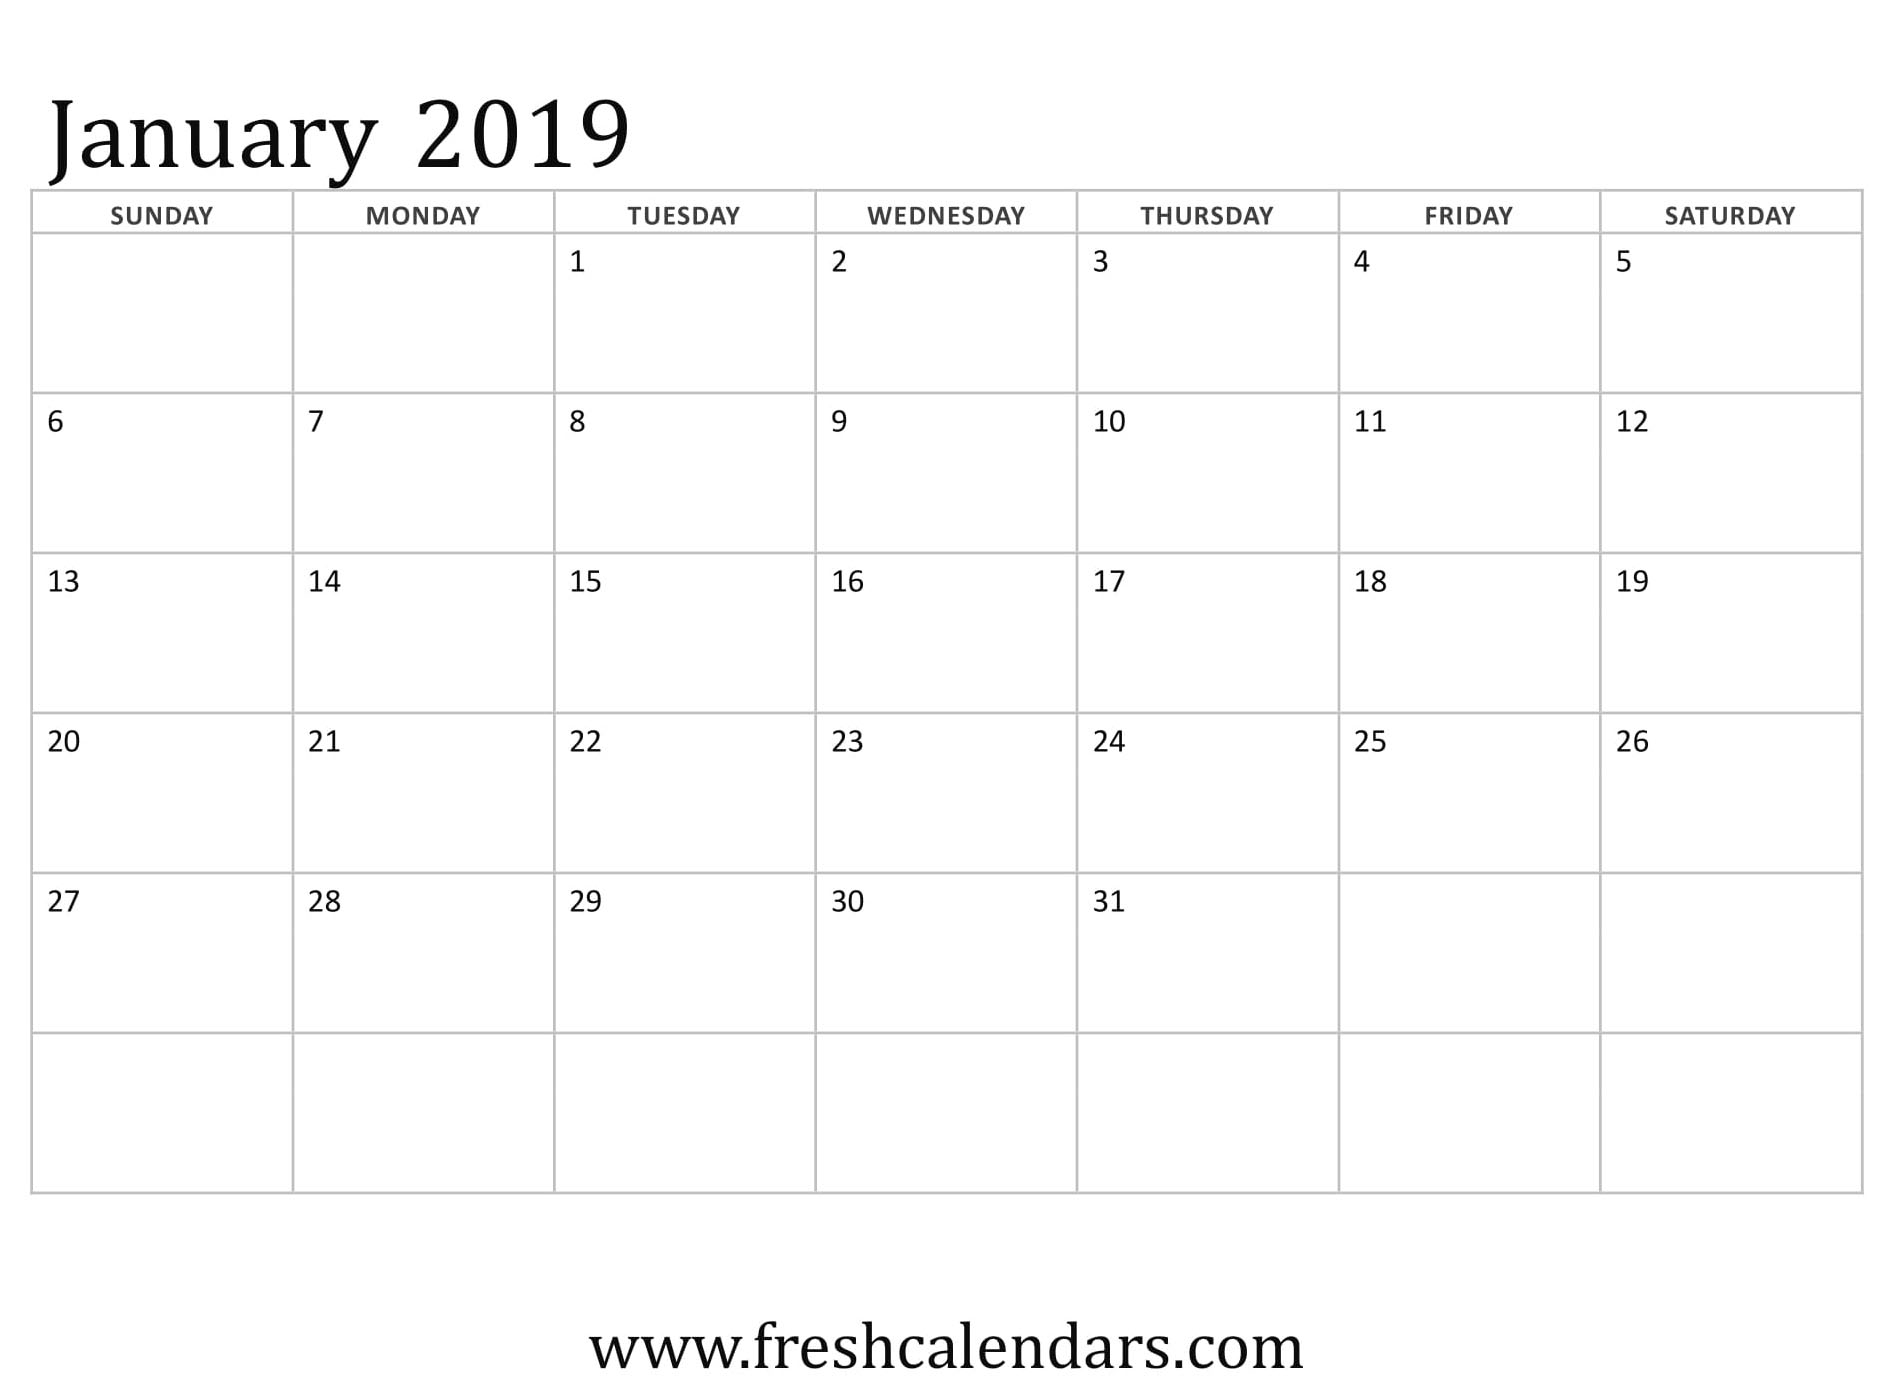 January 2019 Calendar Printable Templates